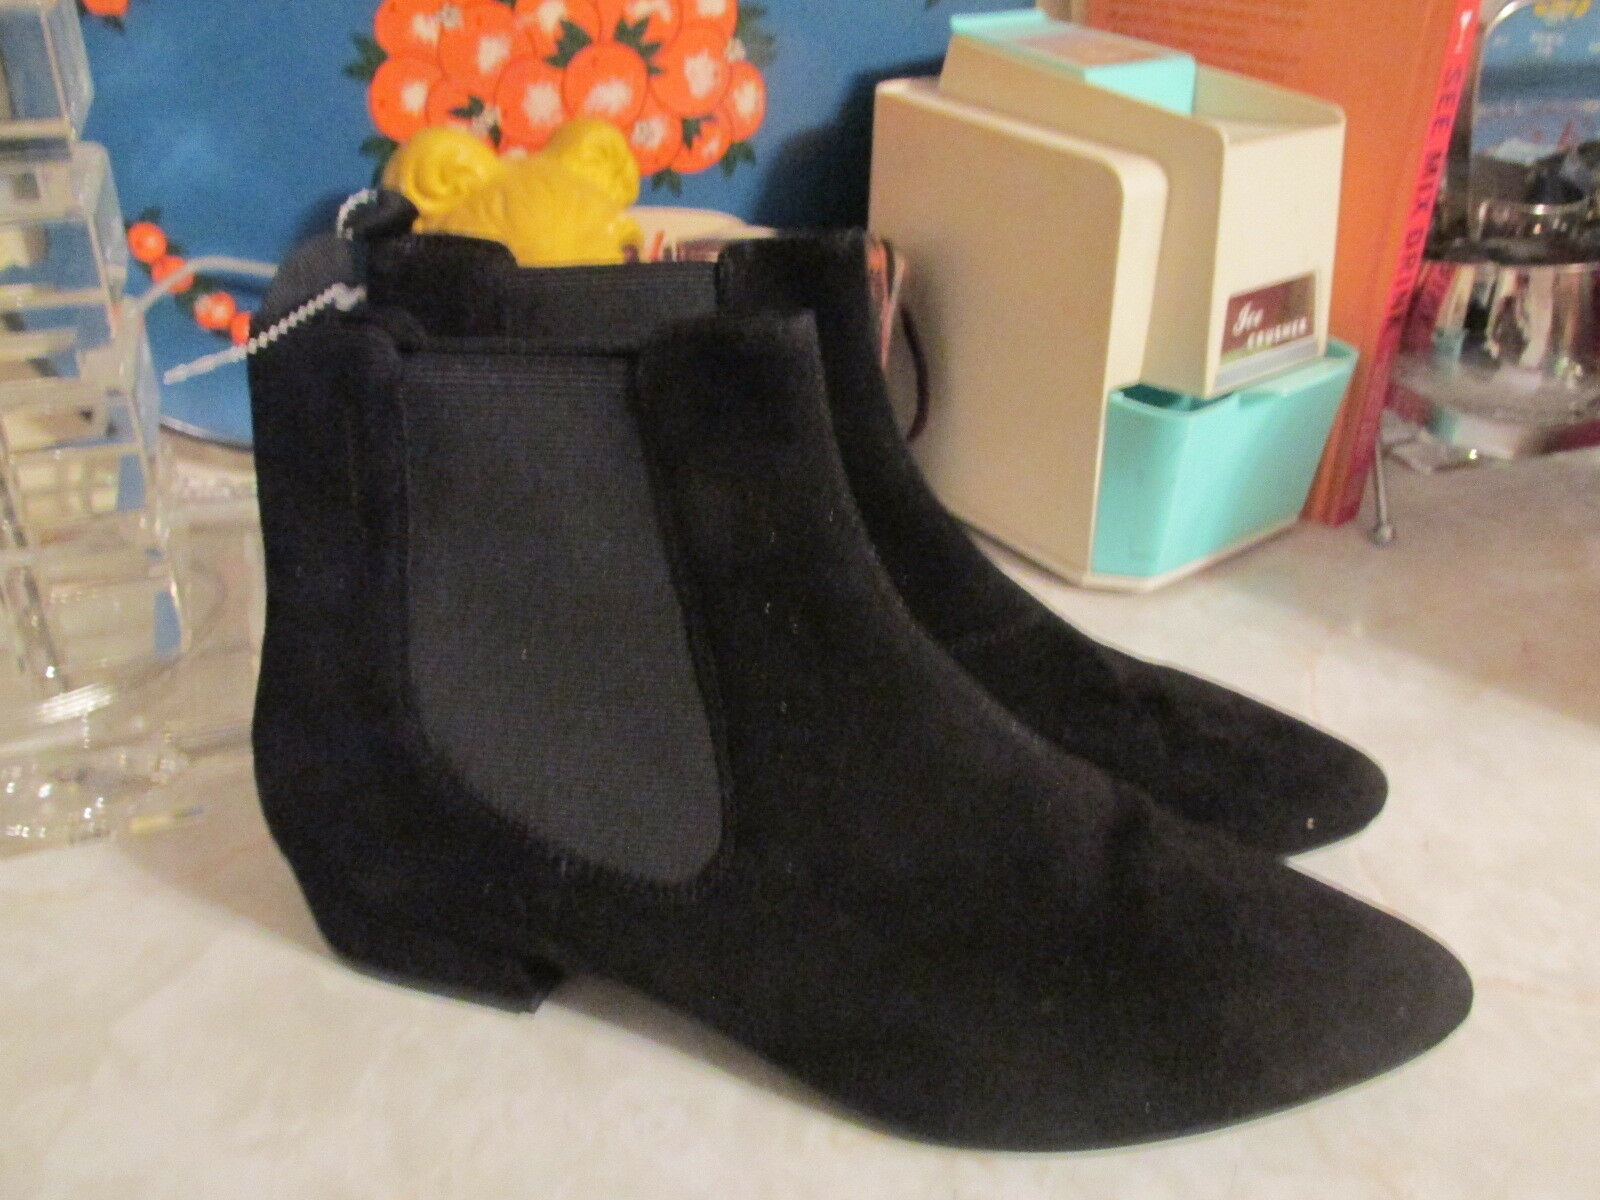 Vagabond Suede leather pointy toe ankle boots NWOB EU 41 US 10.5 11